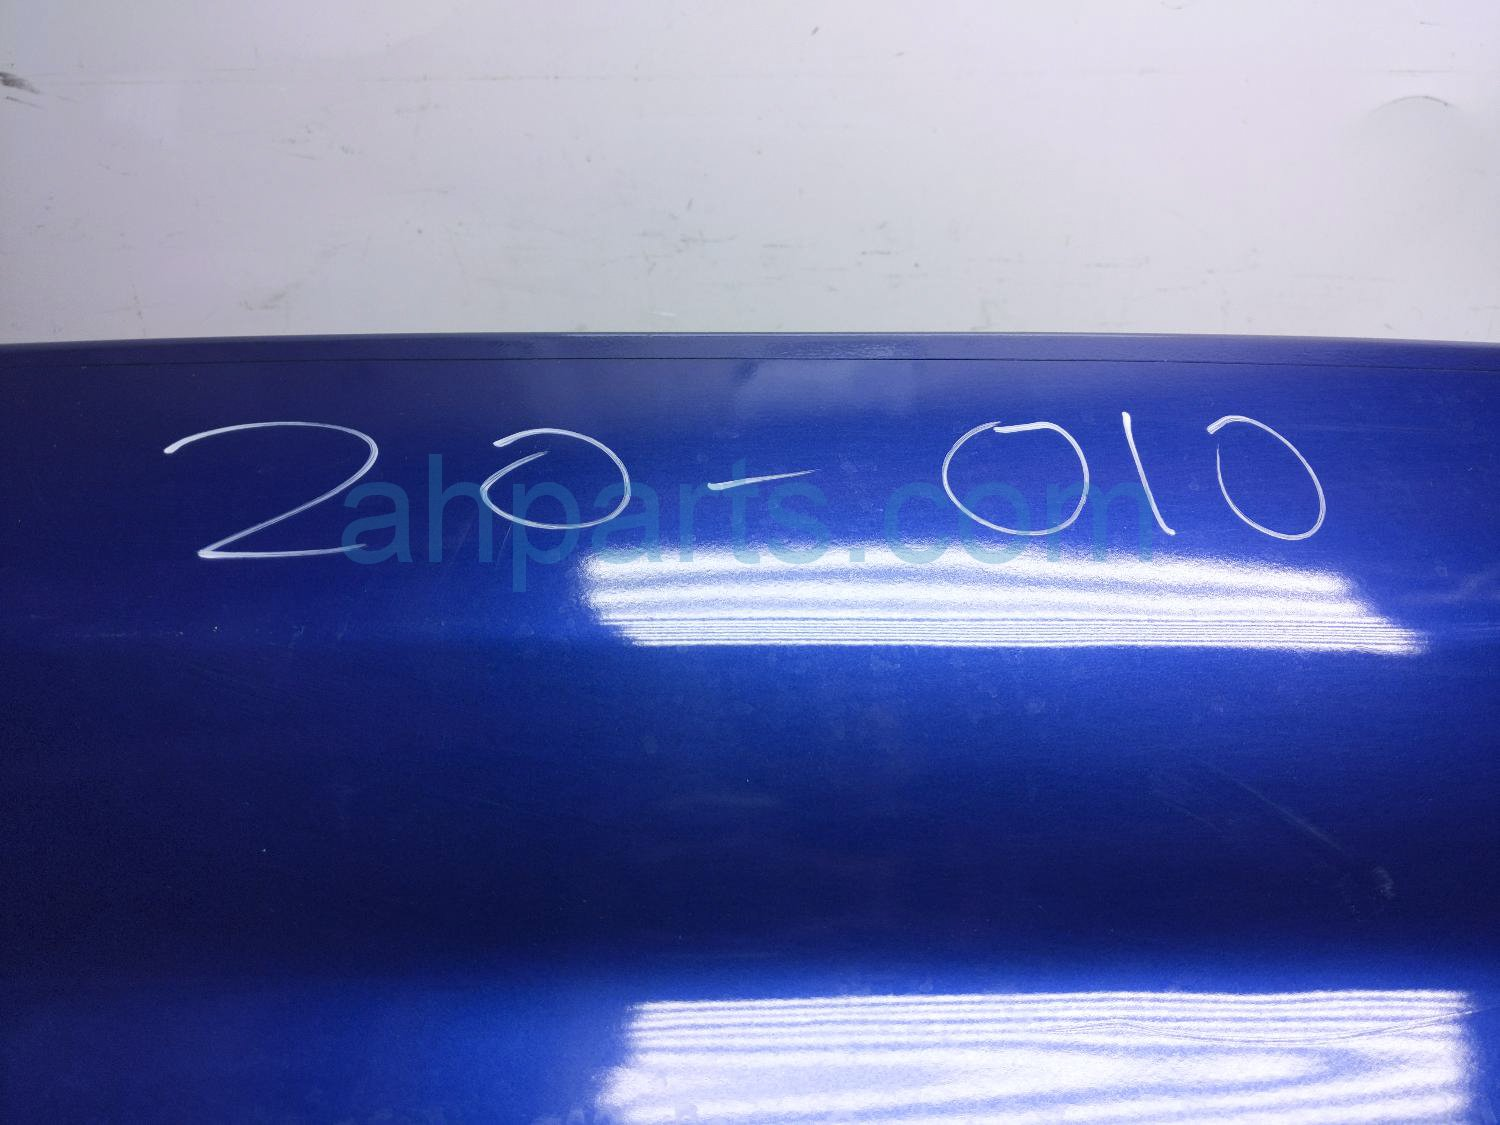 2008 Toyota Prius Rear Bumper Cover   Blue   52159 47903 Replacement